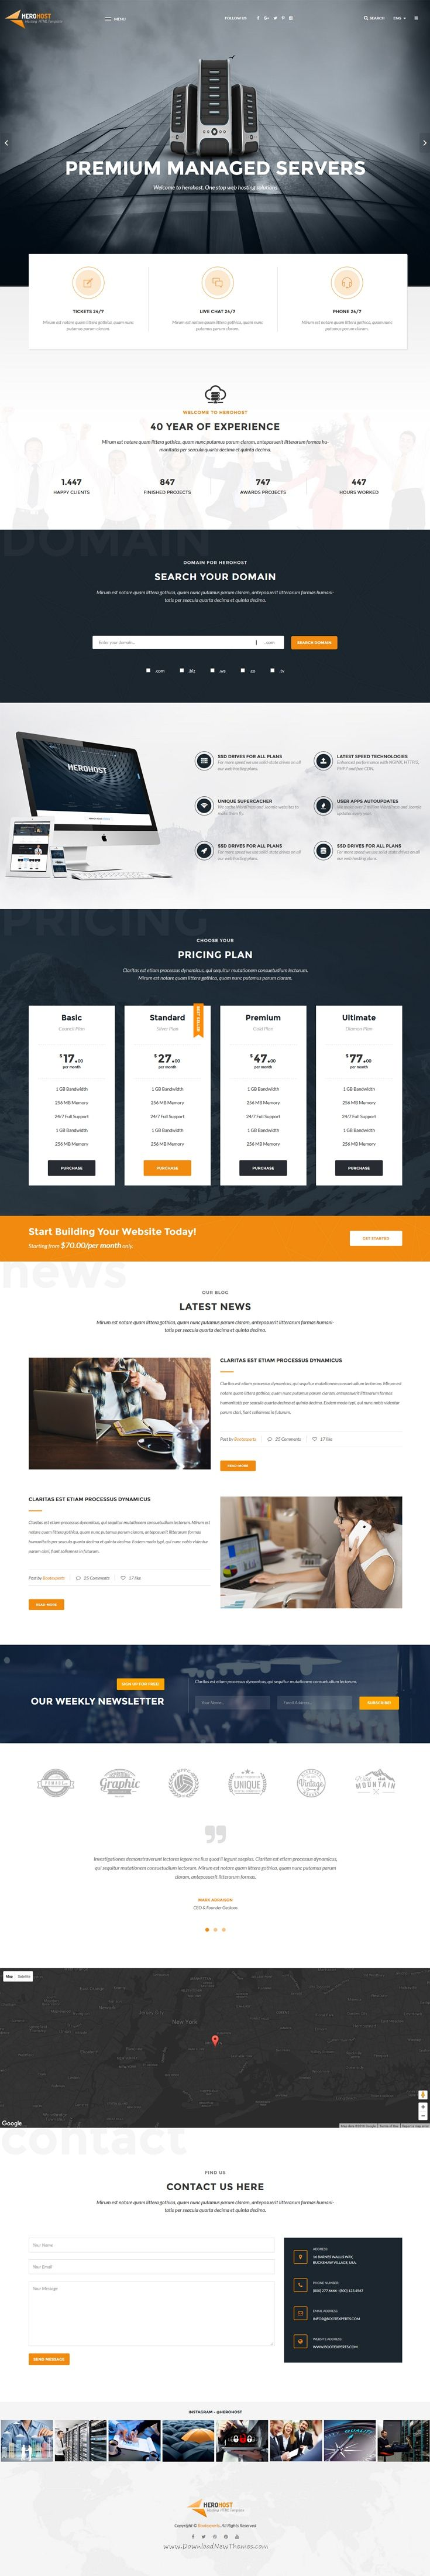 53 best Hosting Web Templates images on Pinterest | Coffee break ...